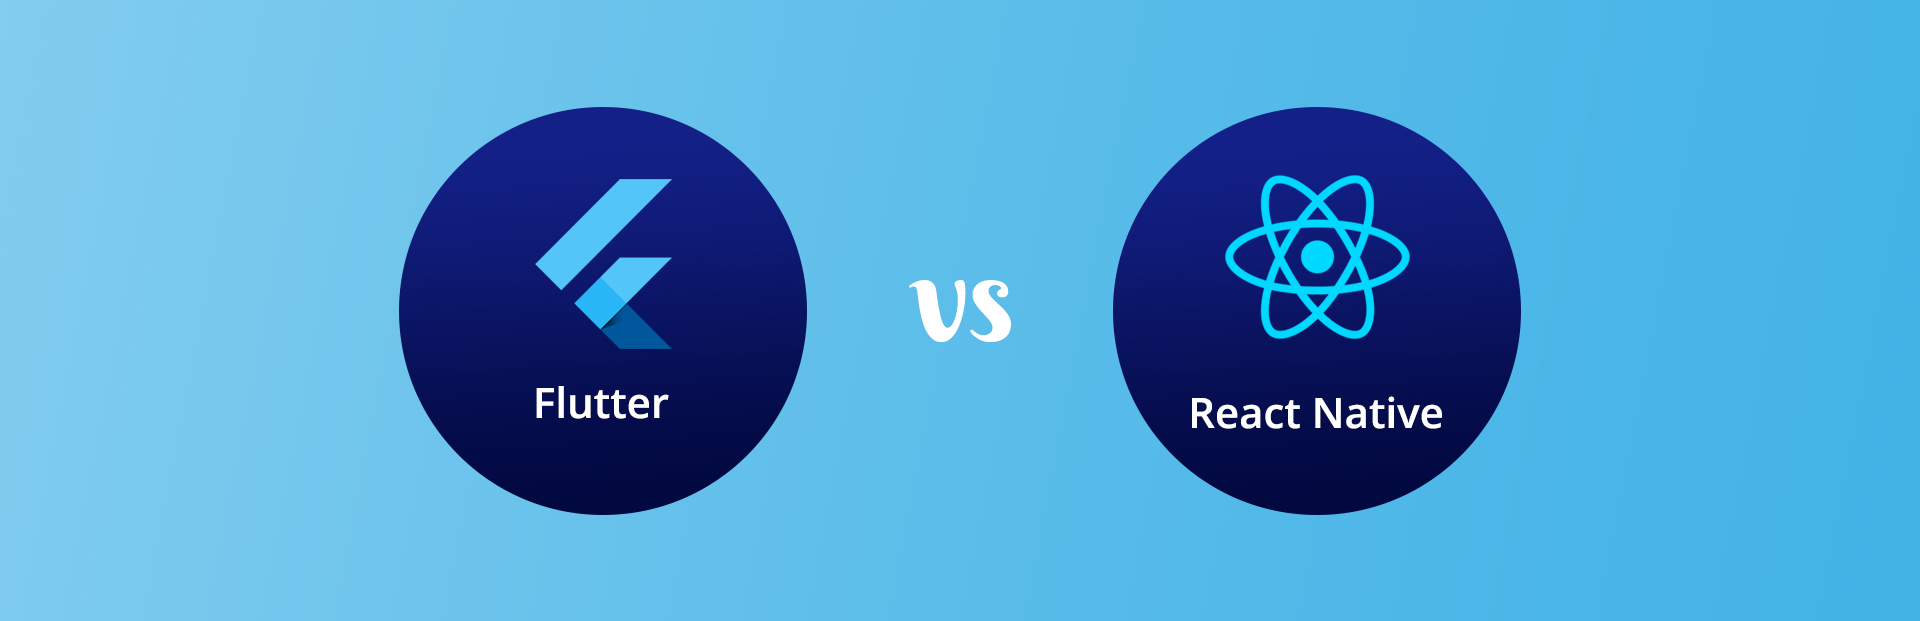 Why Flutter trumps React Native as the Top-Choice cross-development Technology?